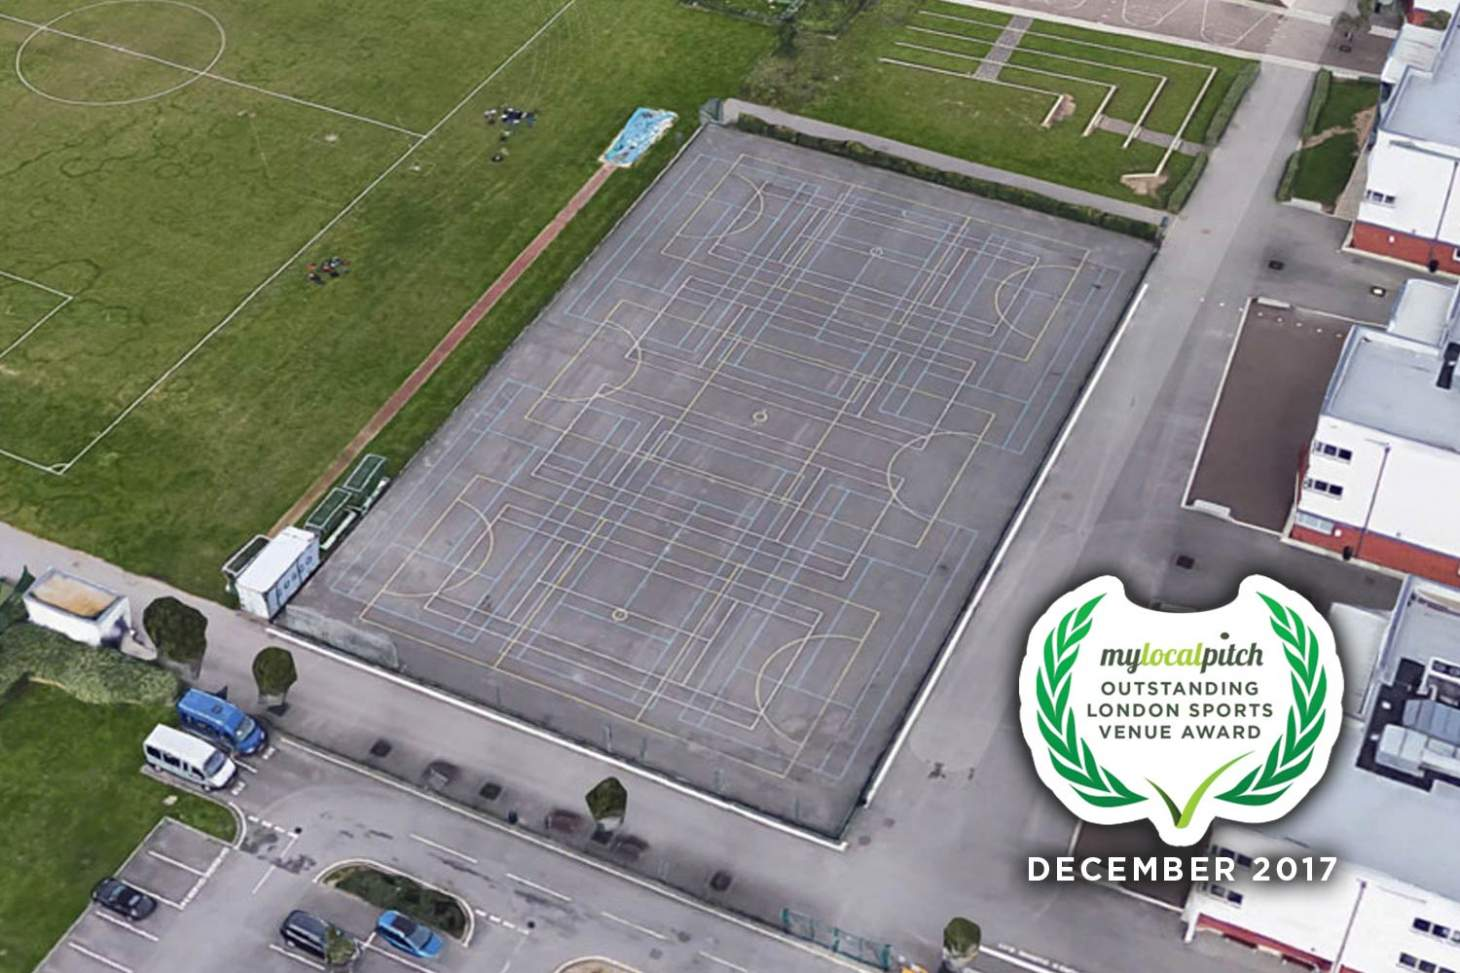 Castle Green Leisure Centre 5 a side | Concrete football pitch